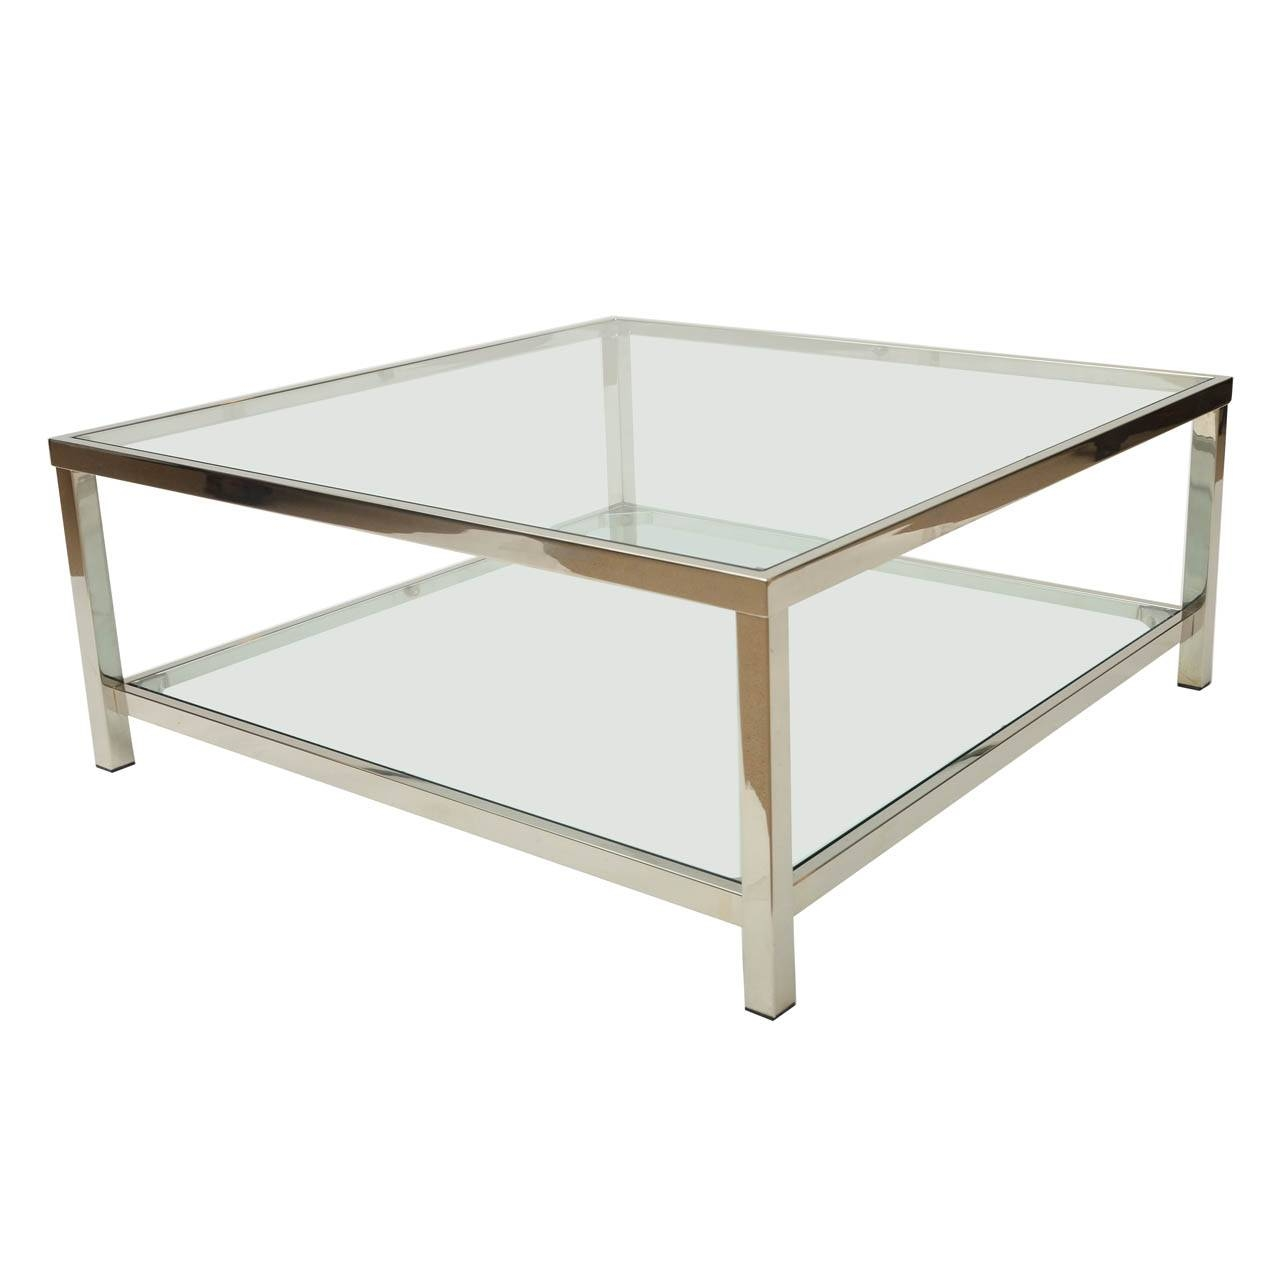 All You Need To Know About Glass And Chrome Coffee Tables inside Chrome and Wood Coffee Tables (Image 4 of 30)